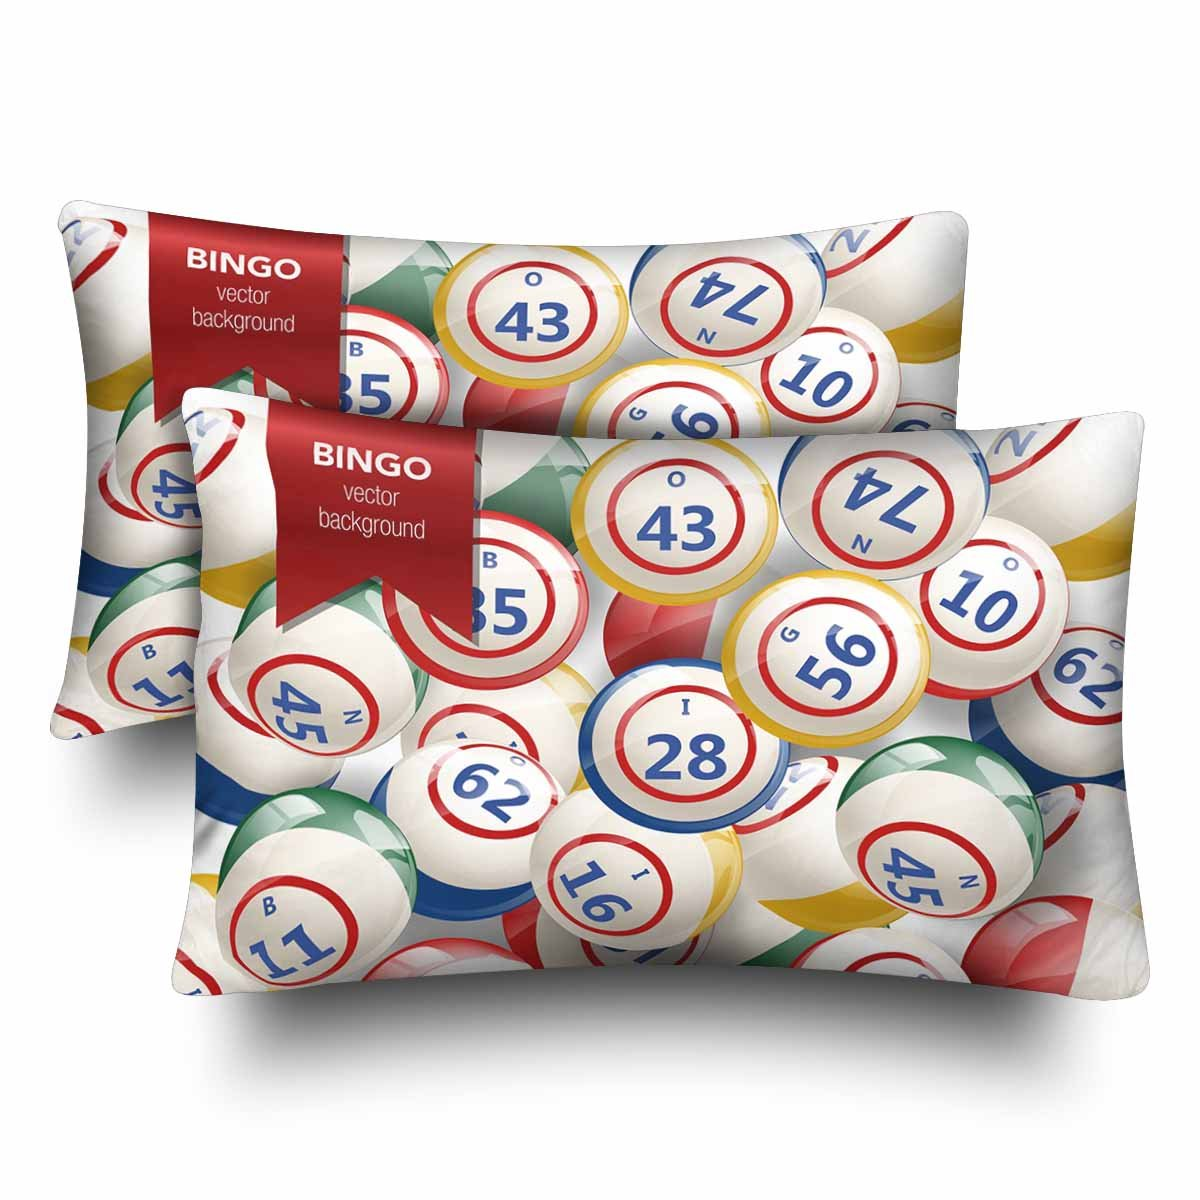 InterestPrint Bingo Lottery Numbers Balls Pillow Cases Pillowcase Queen Size 20x30 Set of 2, Rectangle Pillow Covers Protector for Home Couch Sofa Bedroom Decoration